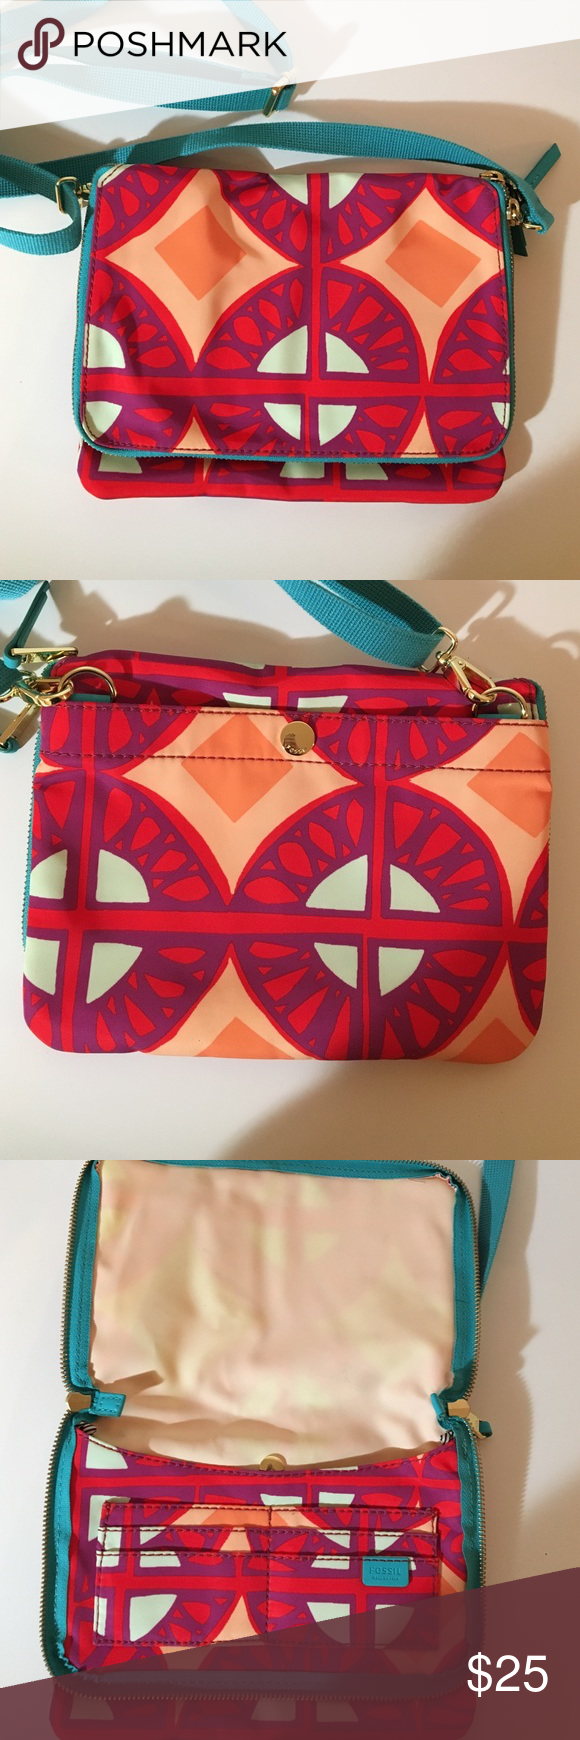 ❕FOSSIL Flat Crossbody❕ I've worn this maybe 2 times!!!! Such a great lightweight crossbody!! Such great colors + perfect for traveling! You can seriously take off the blue strap & make it a clutch! ❤️😊 Fossil Bags Crossbody Bags